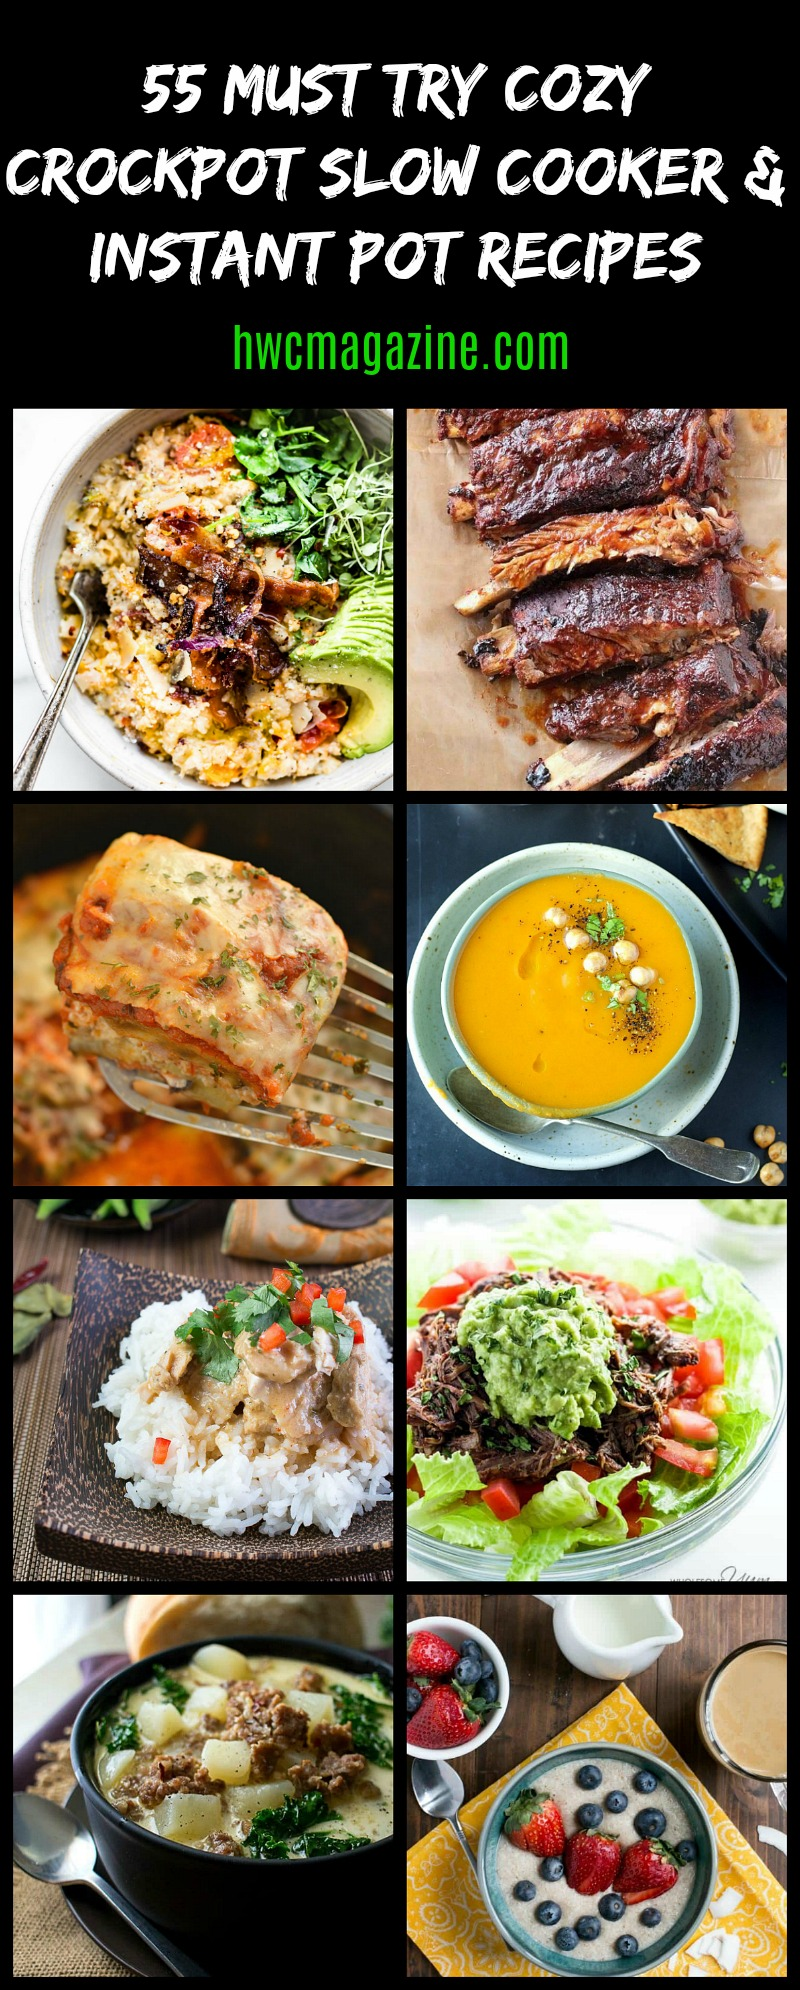 55 MUST TRY Cozy Crockpot Slow Cooker & Instant Pot Recipes